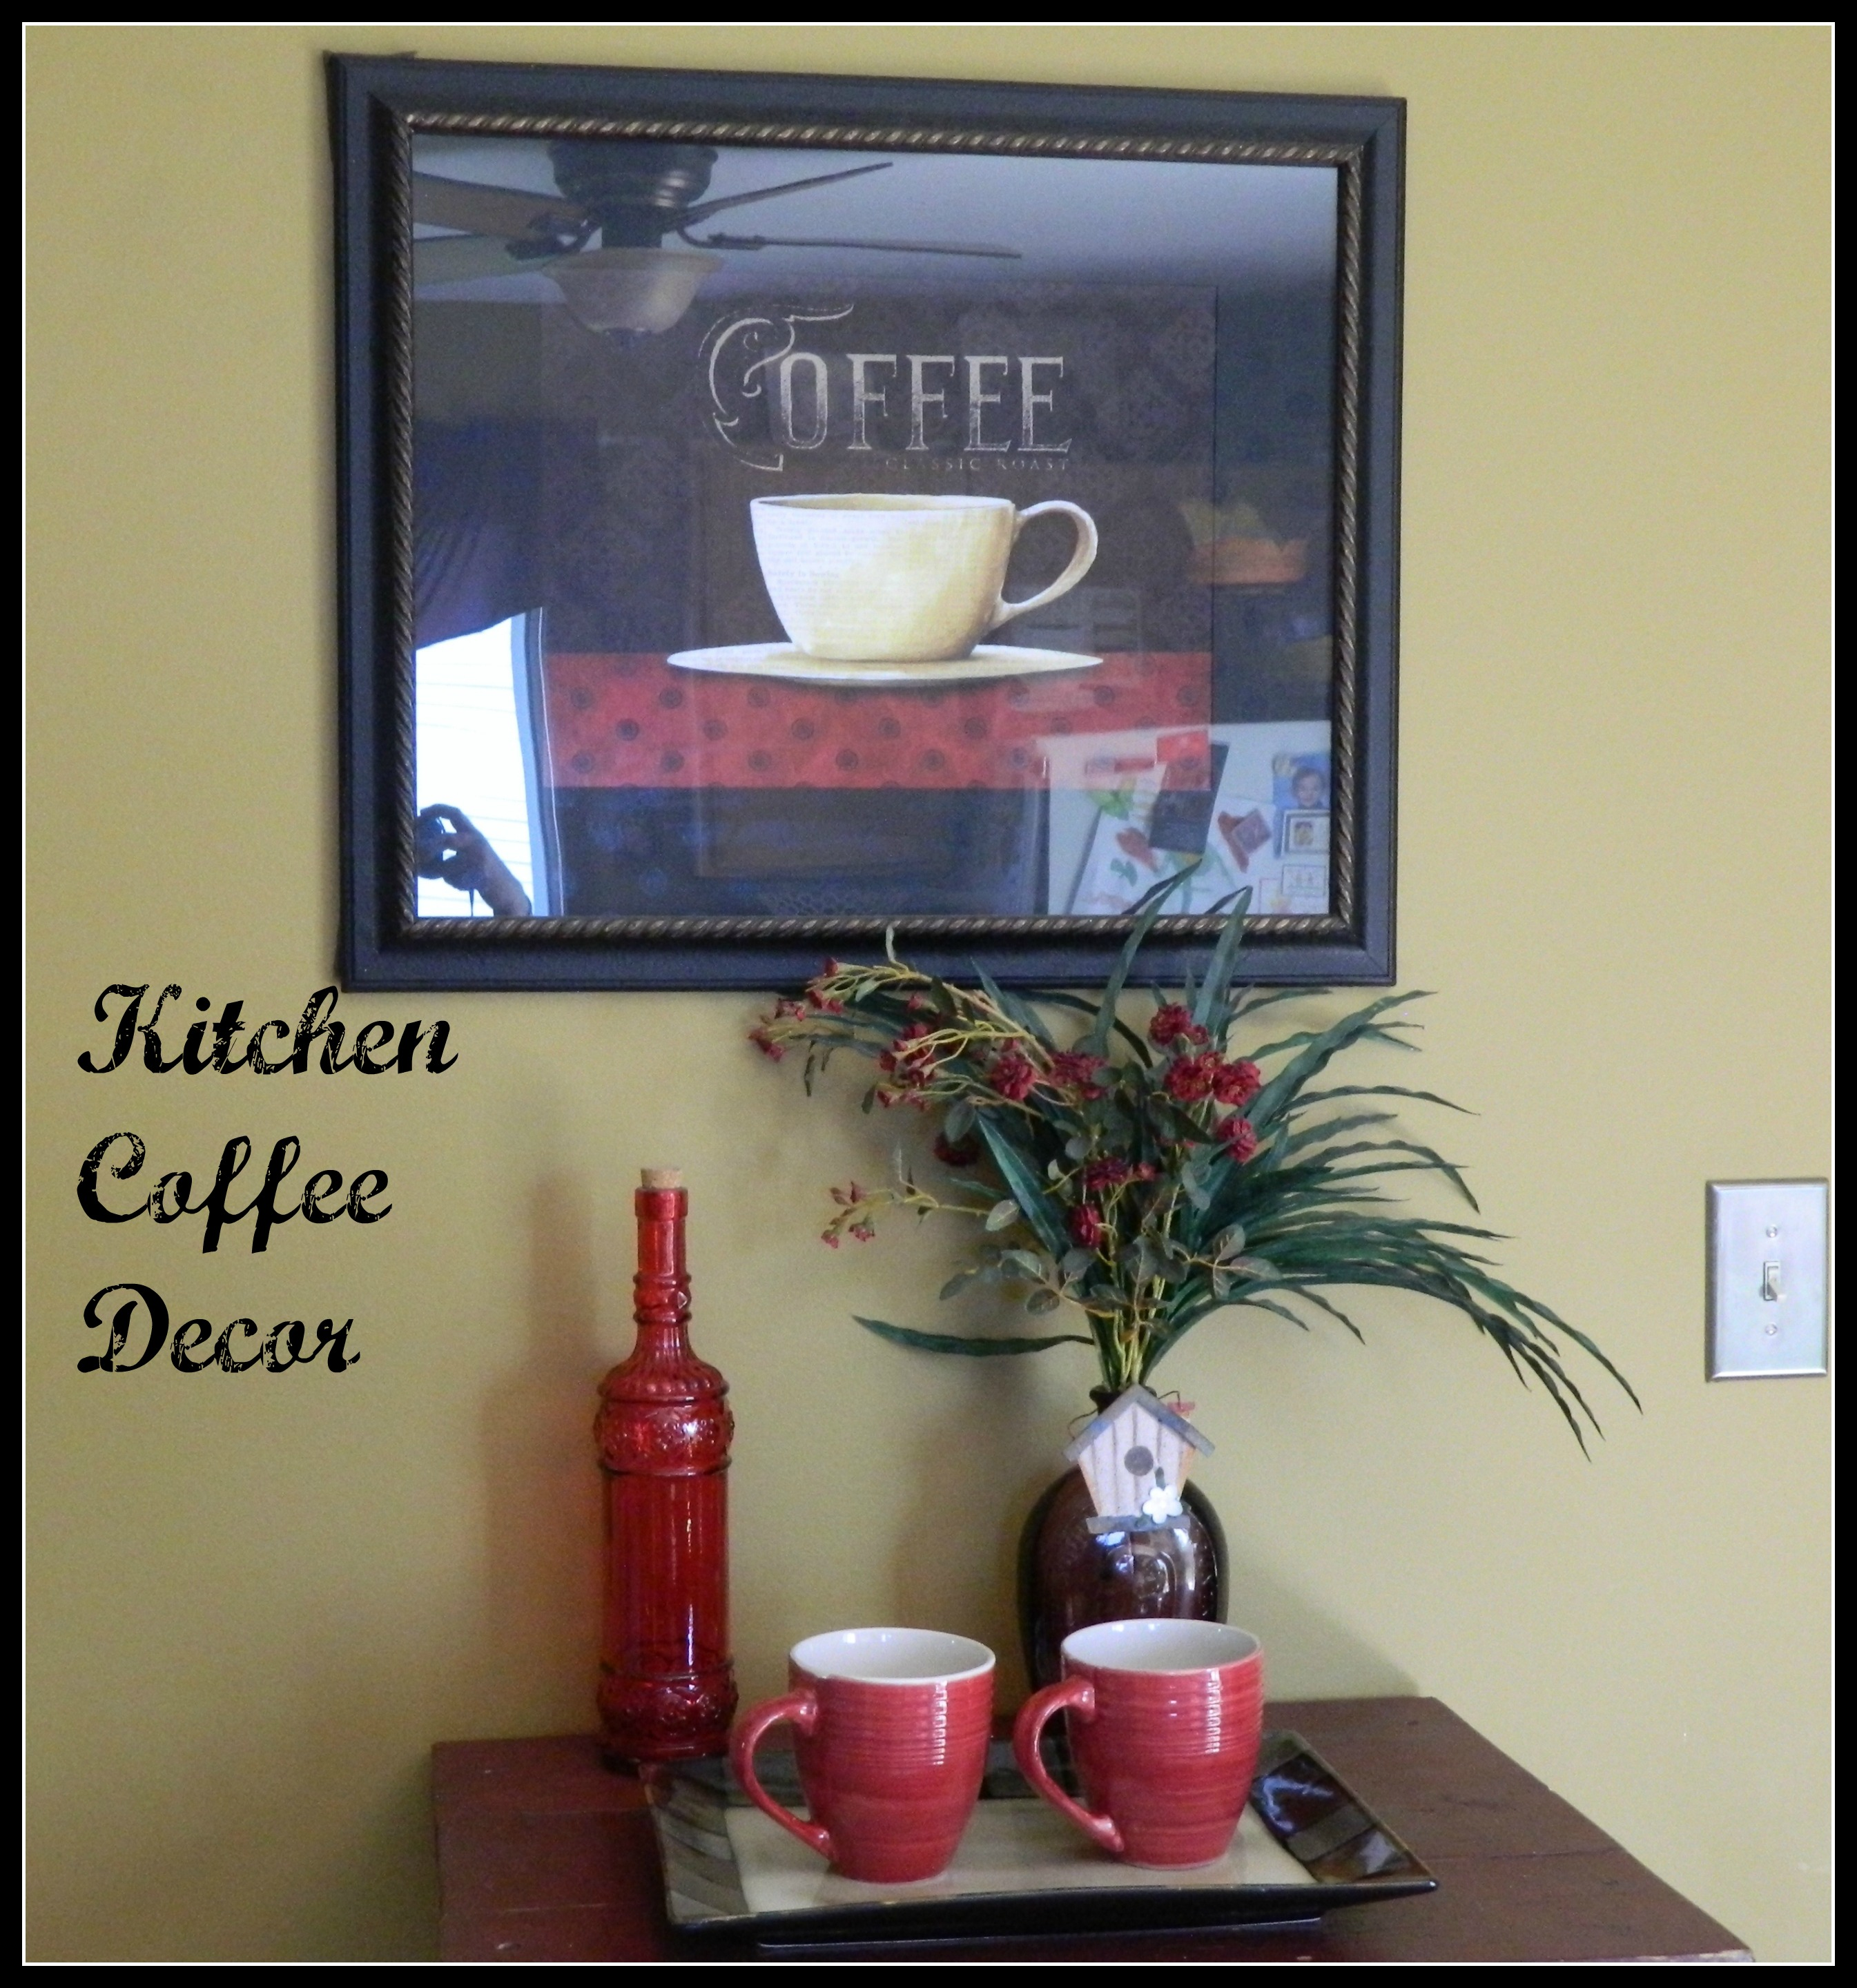 Cafe Decorations For Kitchen Cafe Decor For Kitchen Kitchen Ideas